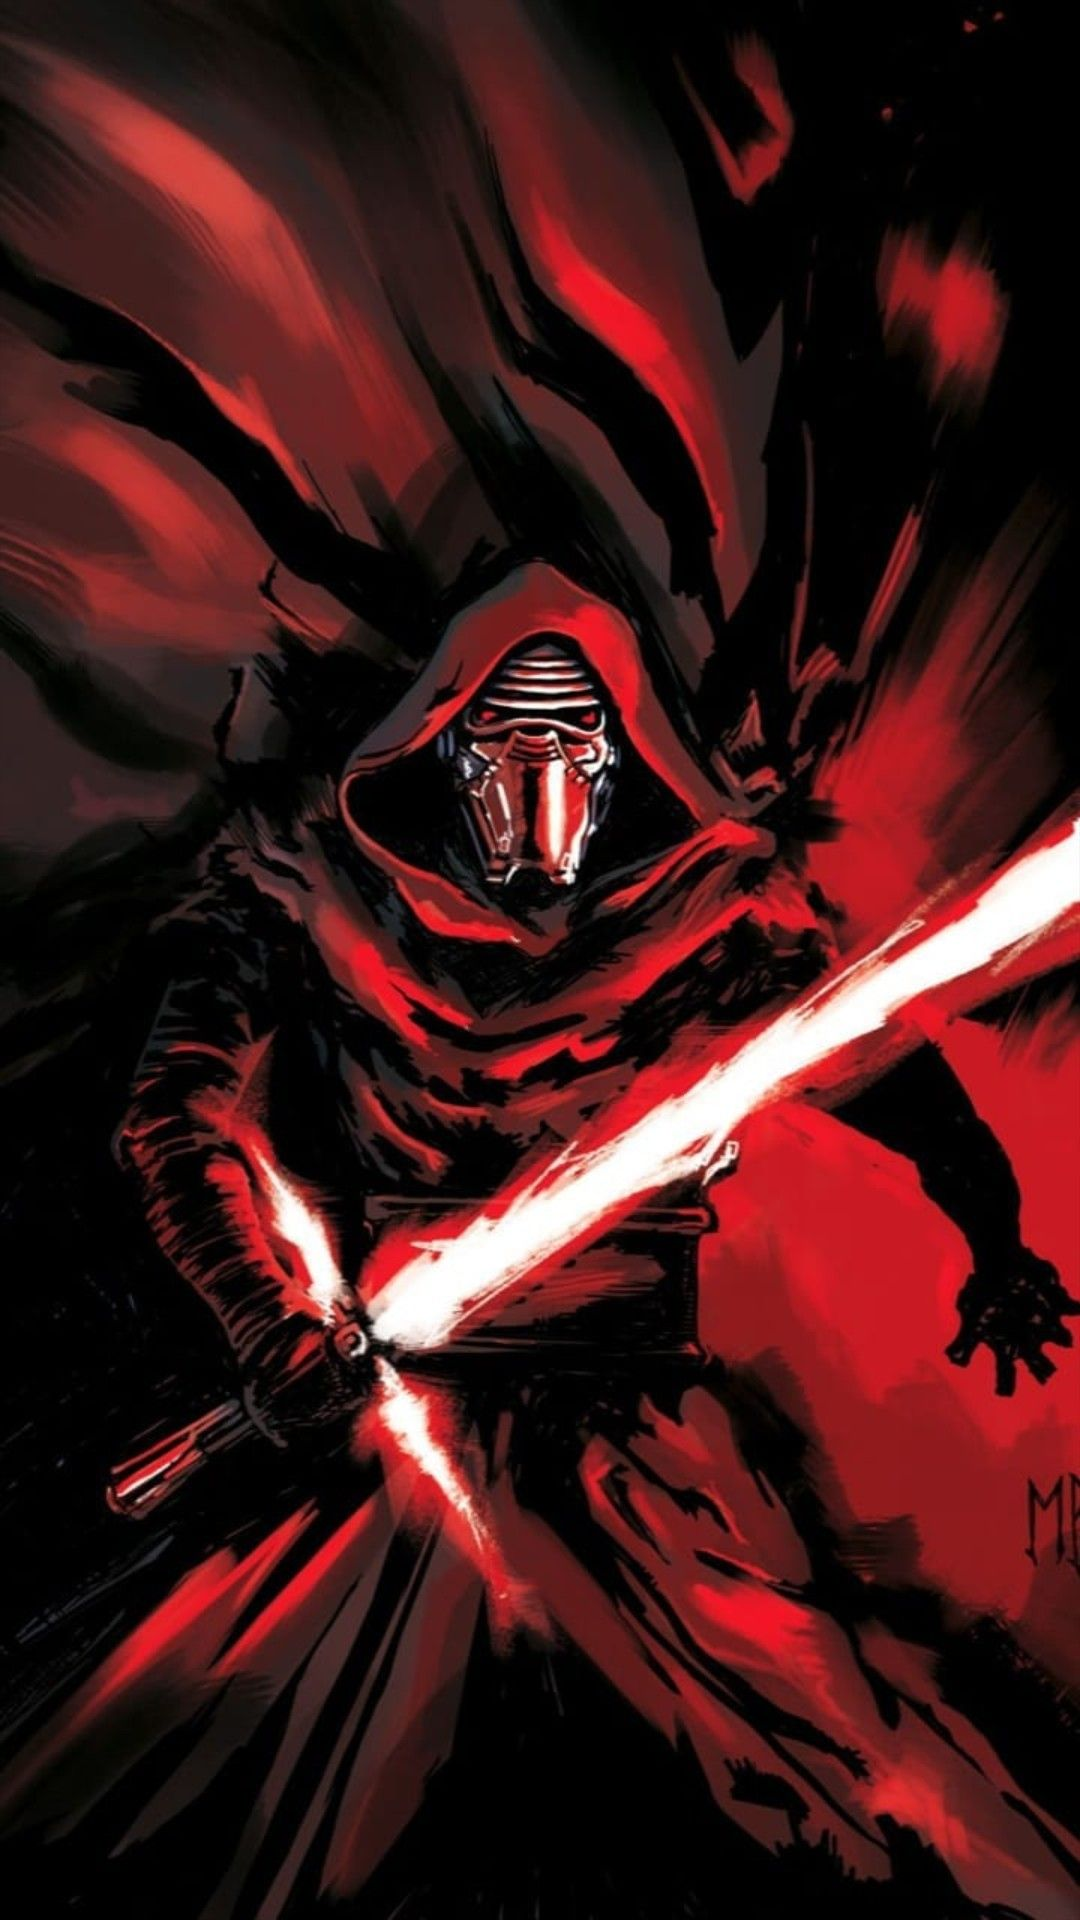 Pin by Dustin Juan on star wars (With images) Ren star